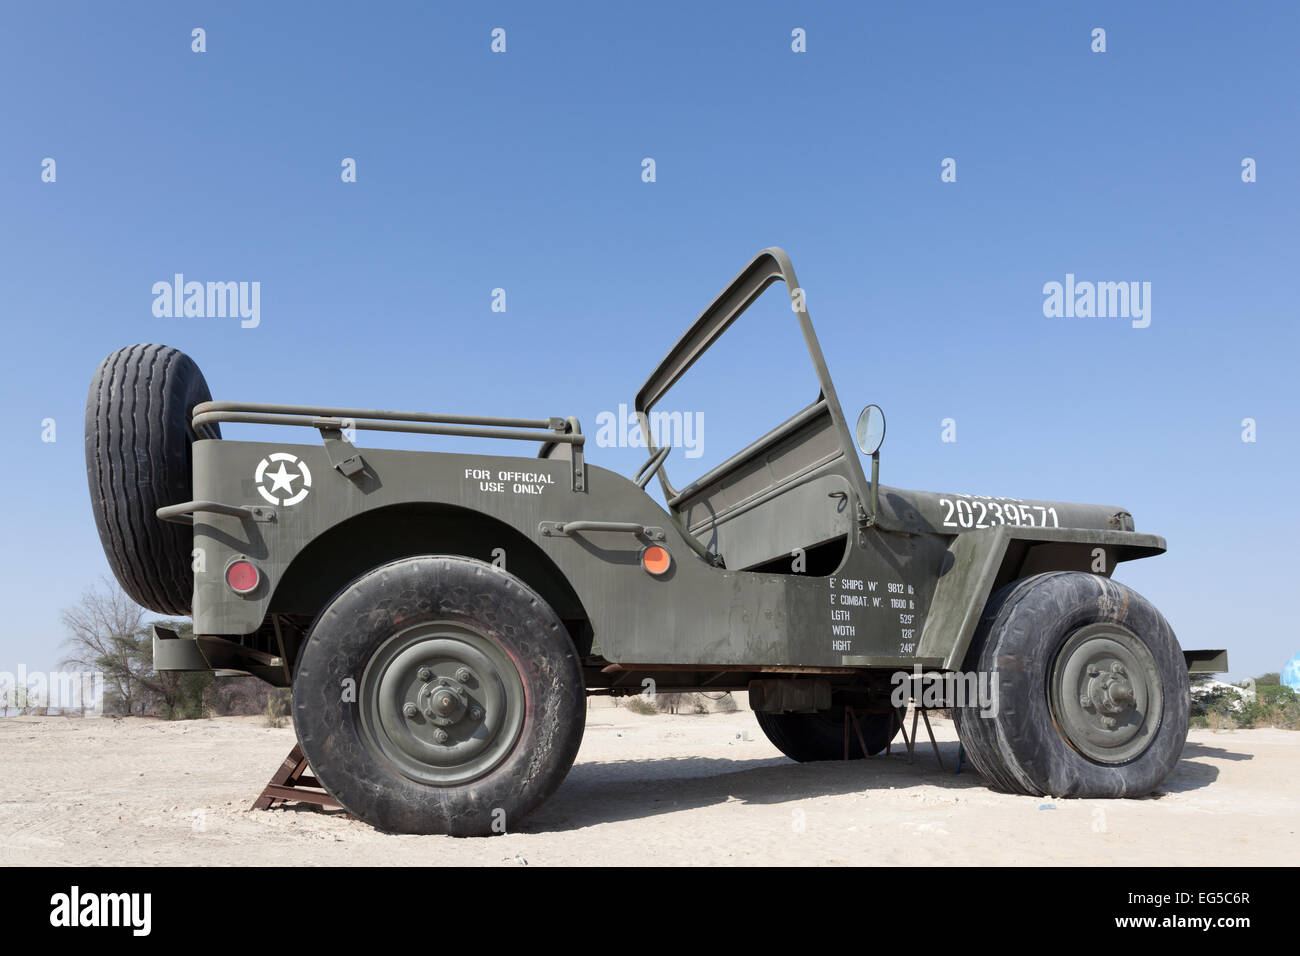 Willys Jeep Stock Photos Willys Jeep Stock Images Alamy